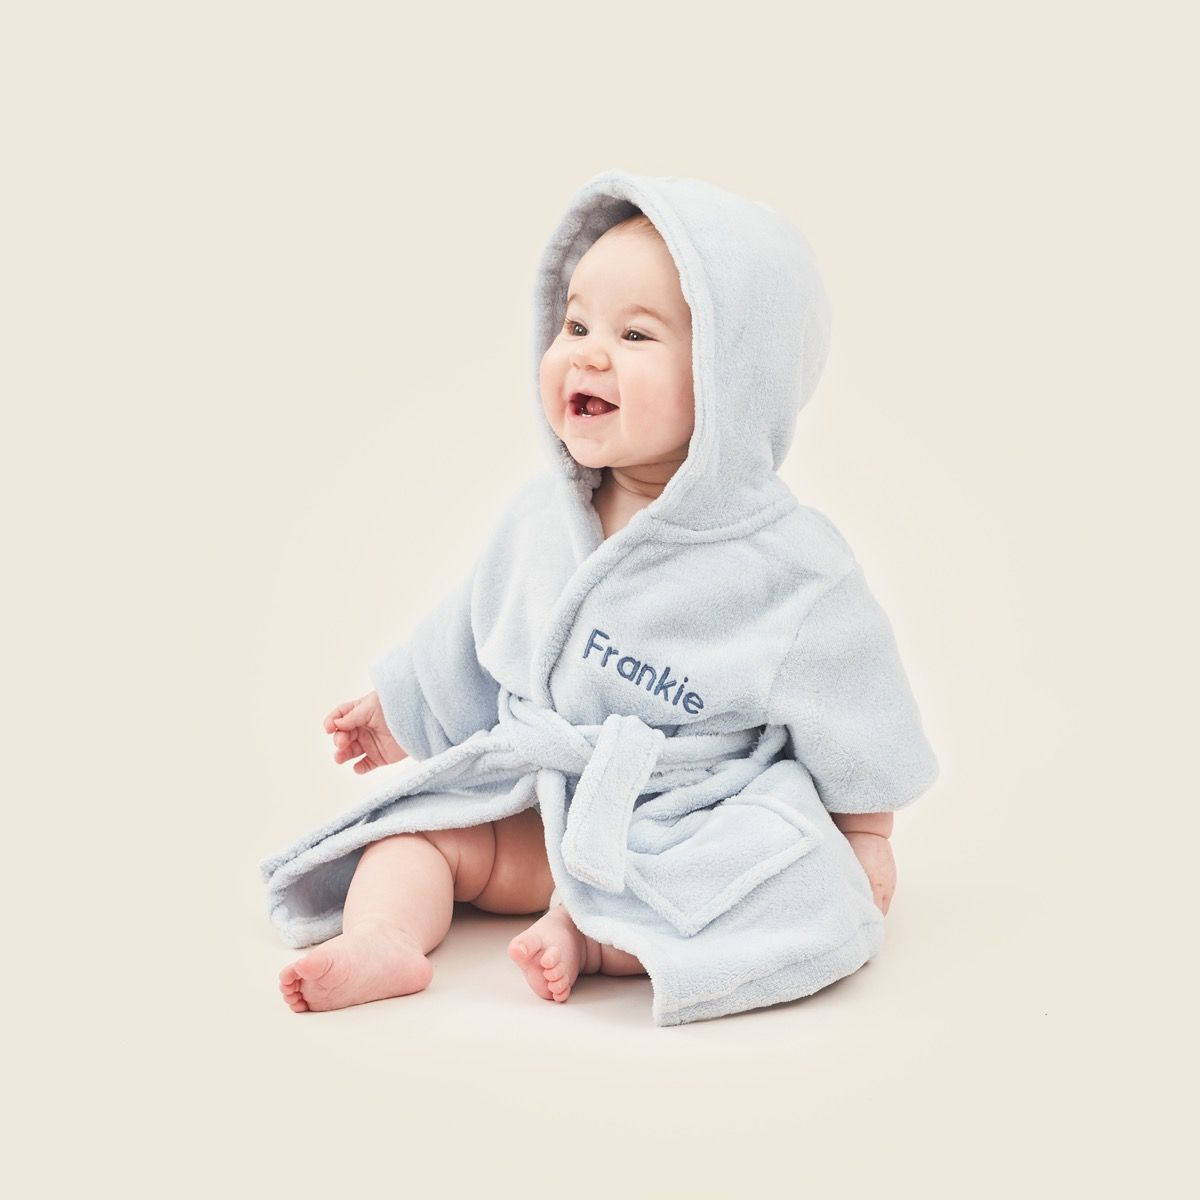 Personalized Toddler Robe